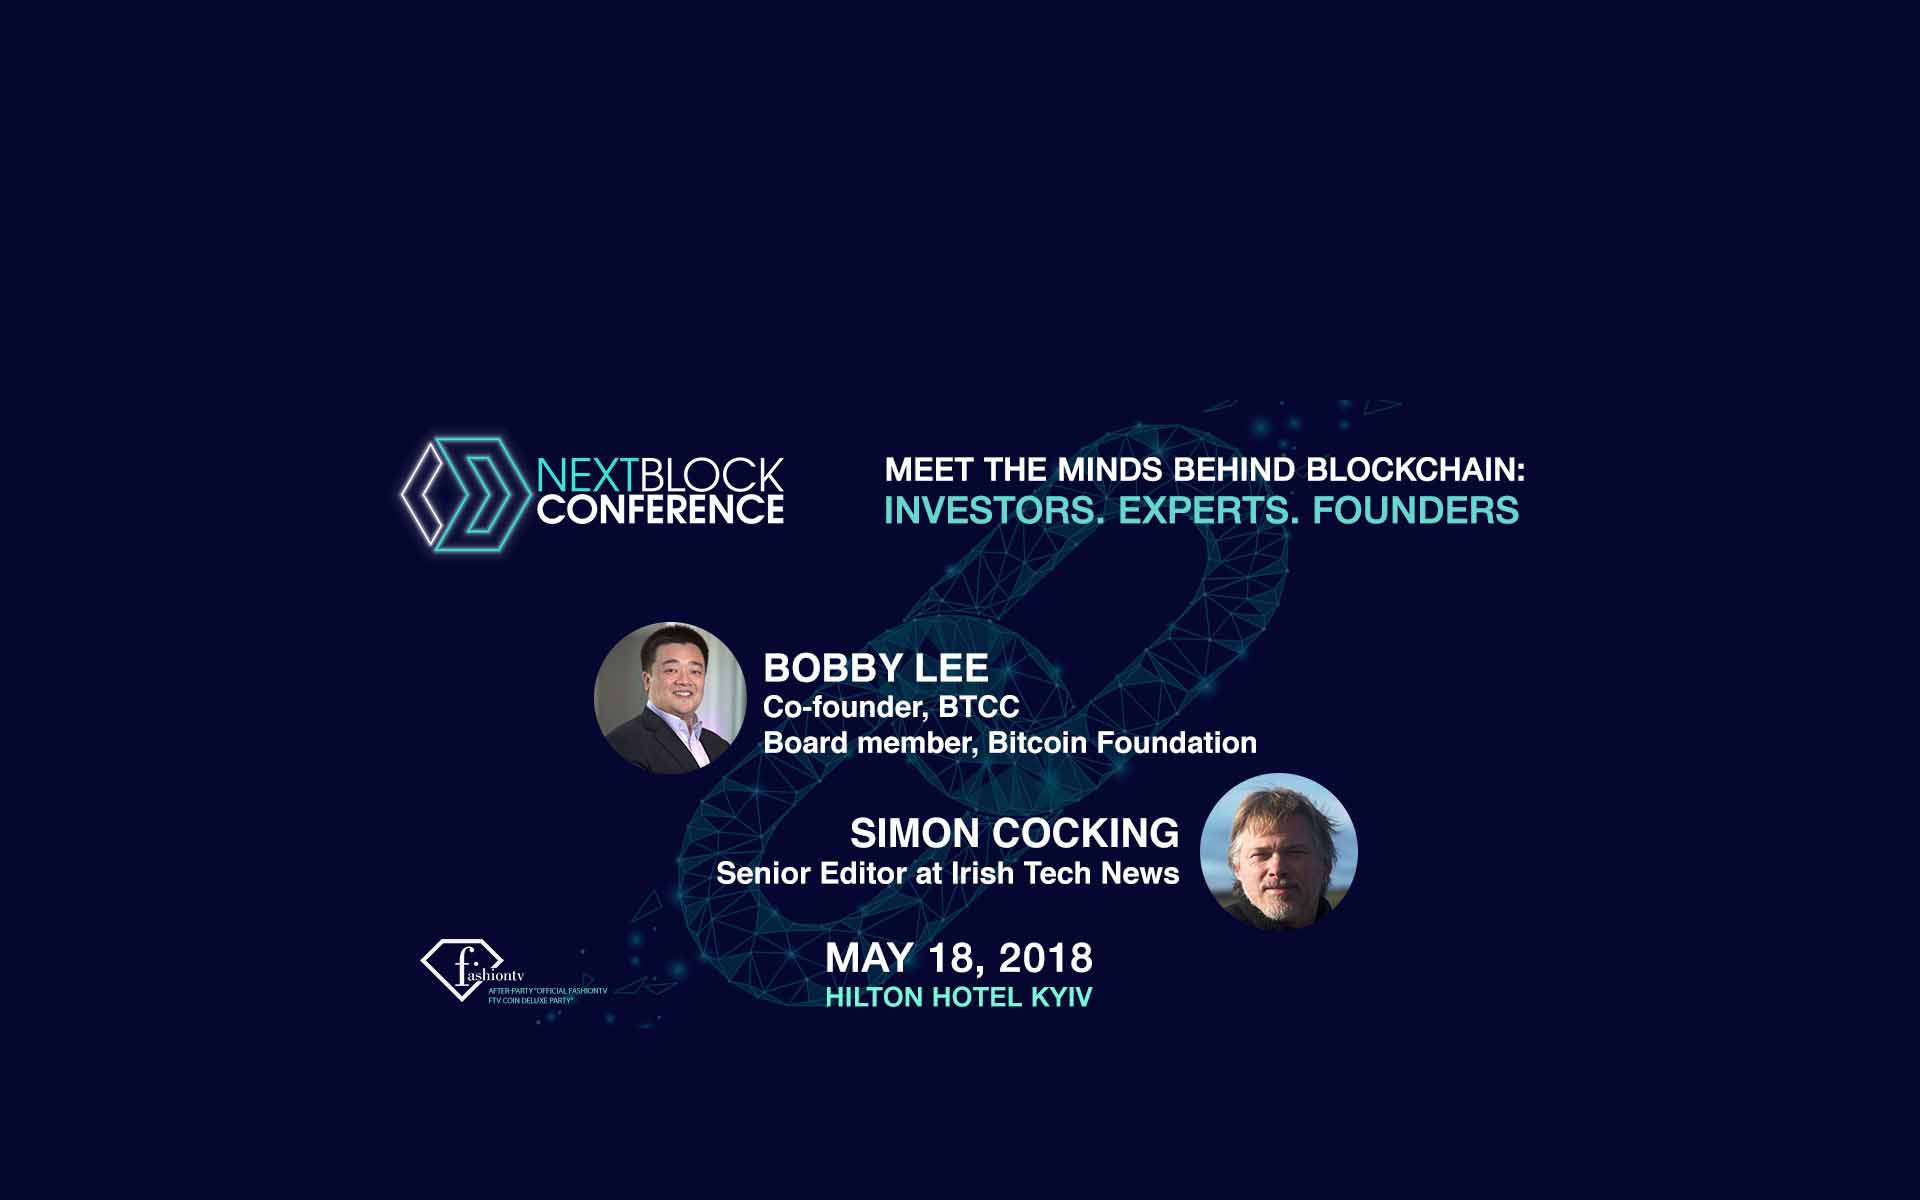 Kyiv to Host Fabulous Crypto Conference and Deluxe Party: Bobby Lee and Simon Cocking 1st time in Ukraine on Stage